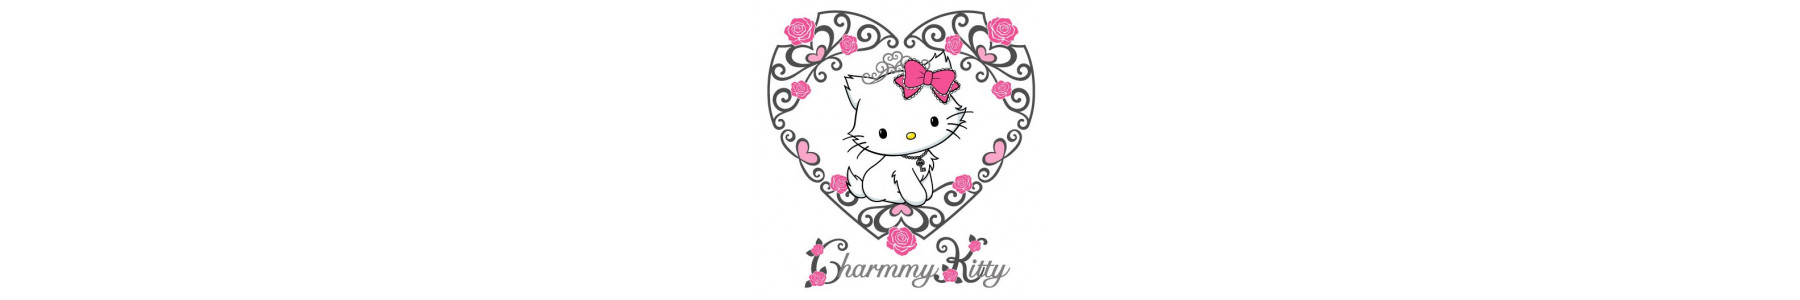 Articole party Charmmy Kitty